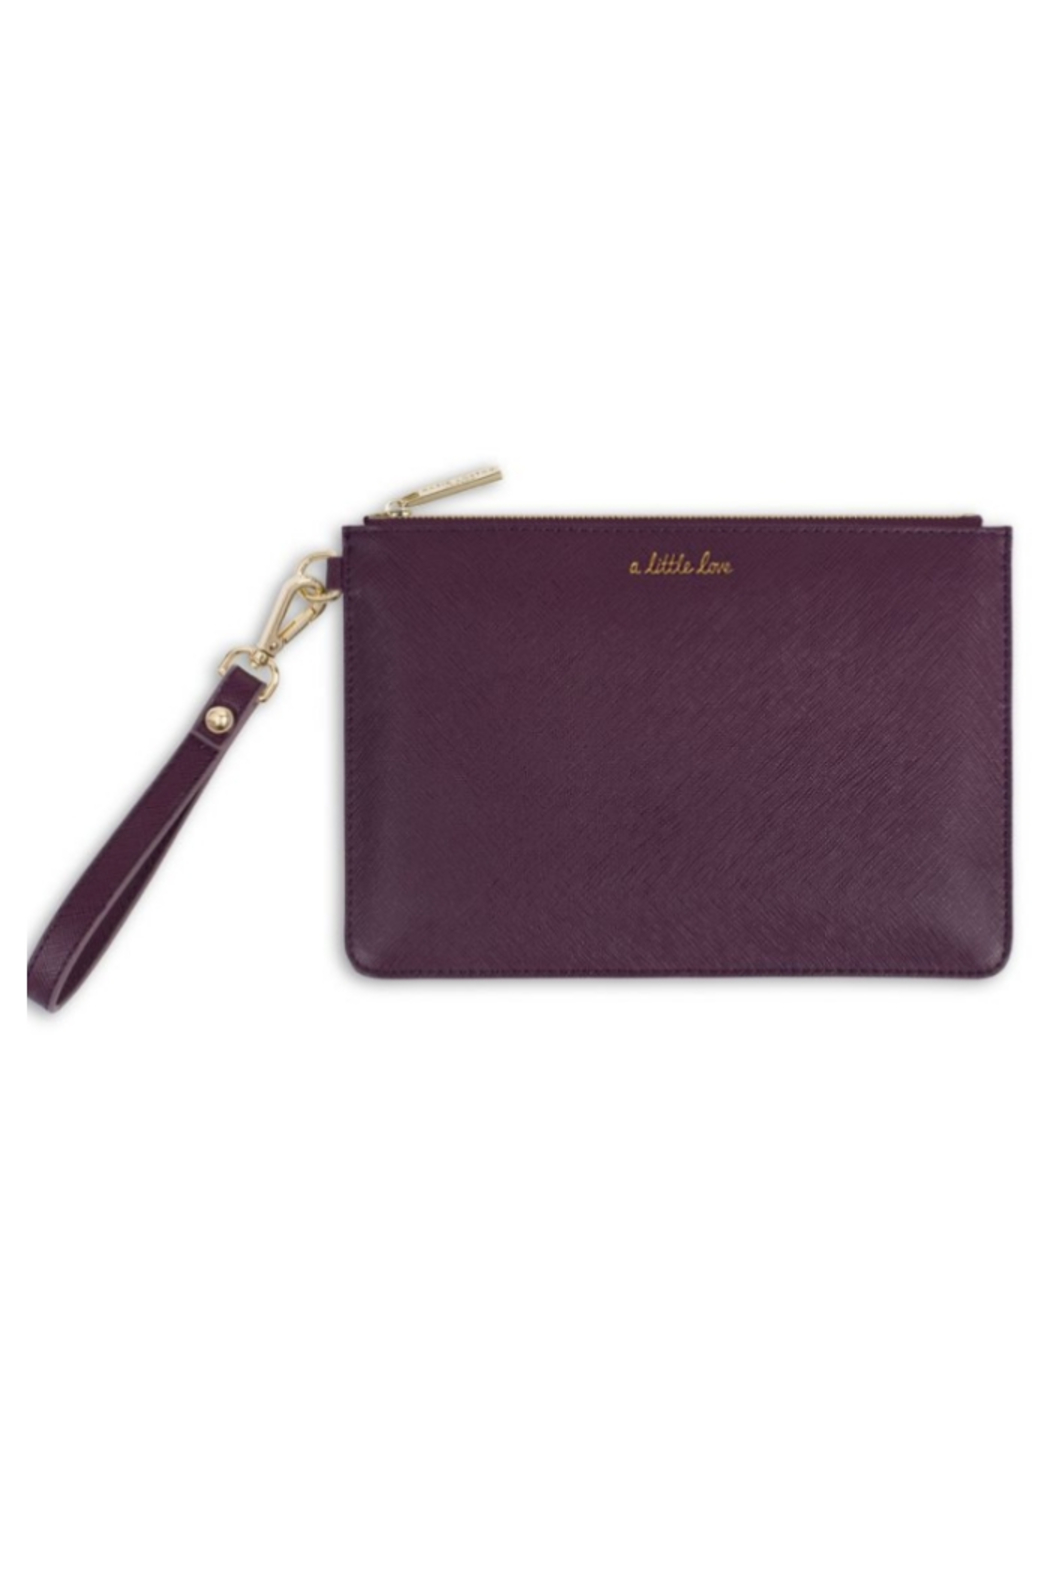 Katie Loxton SECRET MESSAGE POUCH | A LITTLE LOVE, CARRY A LITTLE LOVE WITH YOU WHEREVER YOU - Main Image